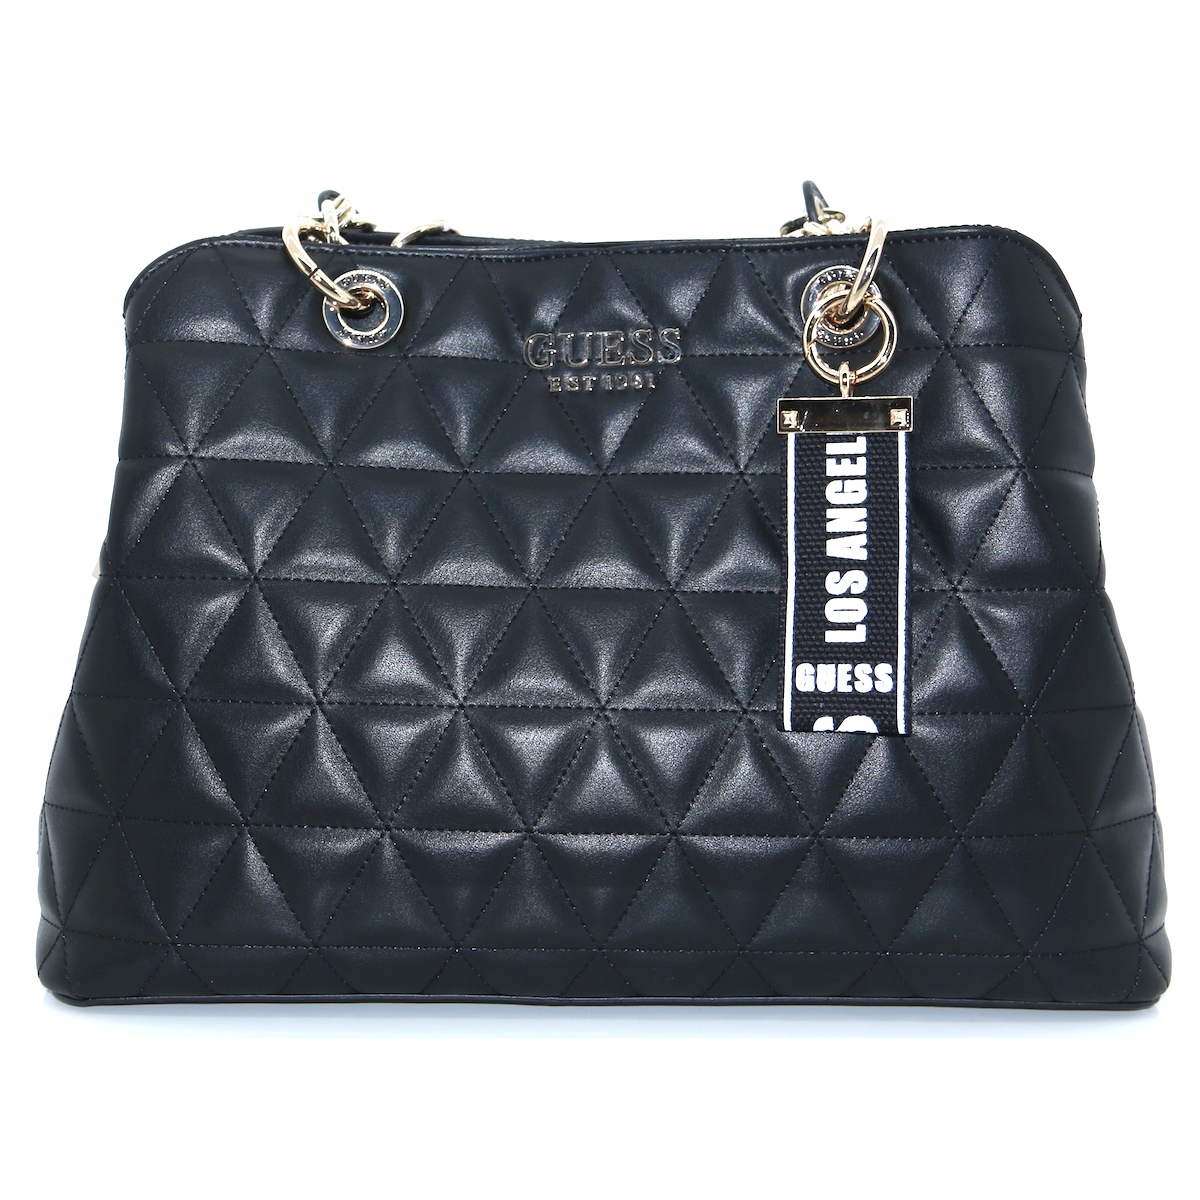 VG7407100 - GUESS BLACK QUILTED HANDBAG